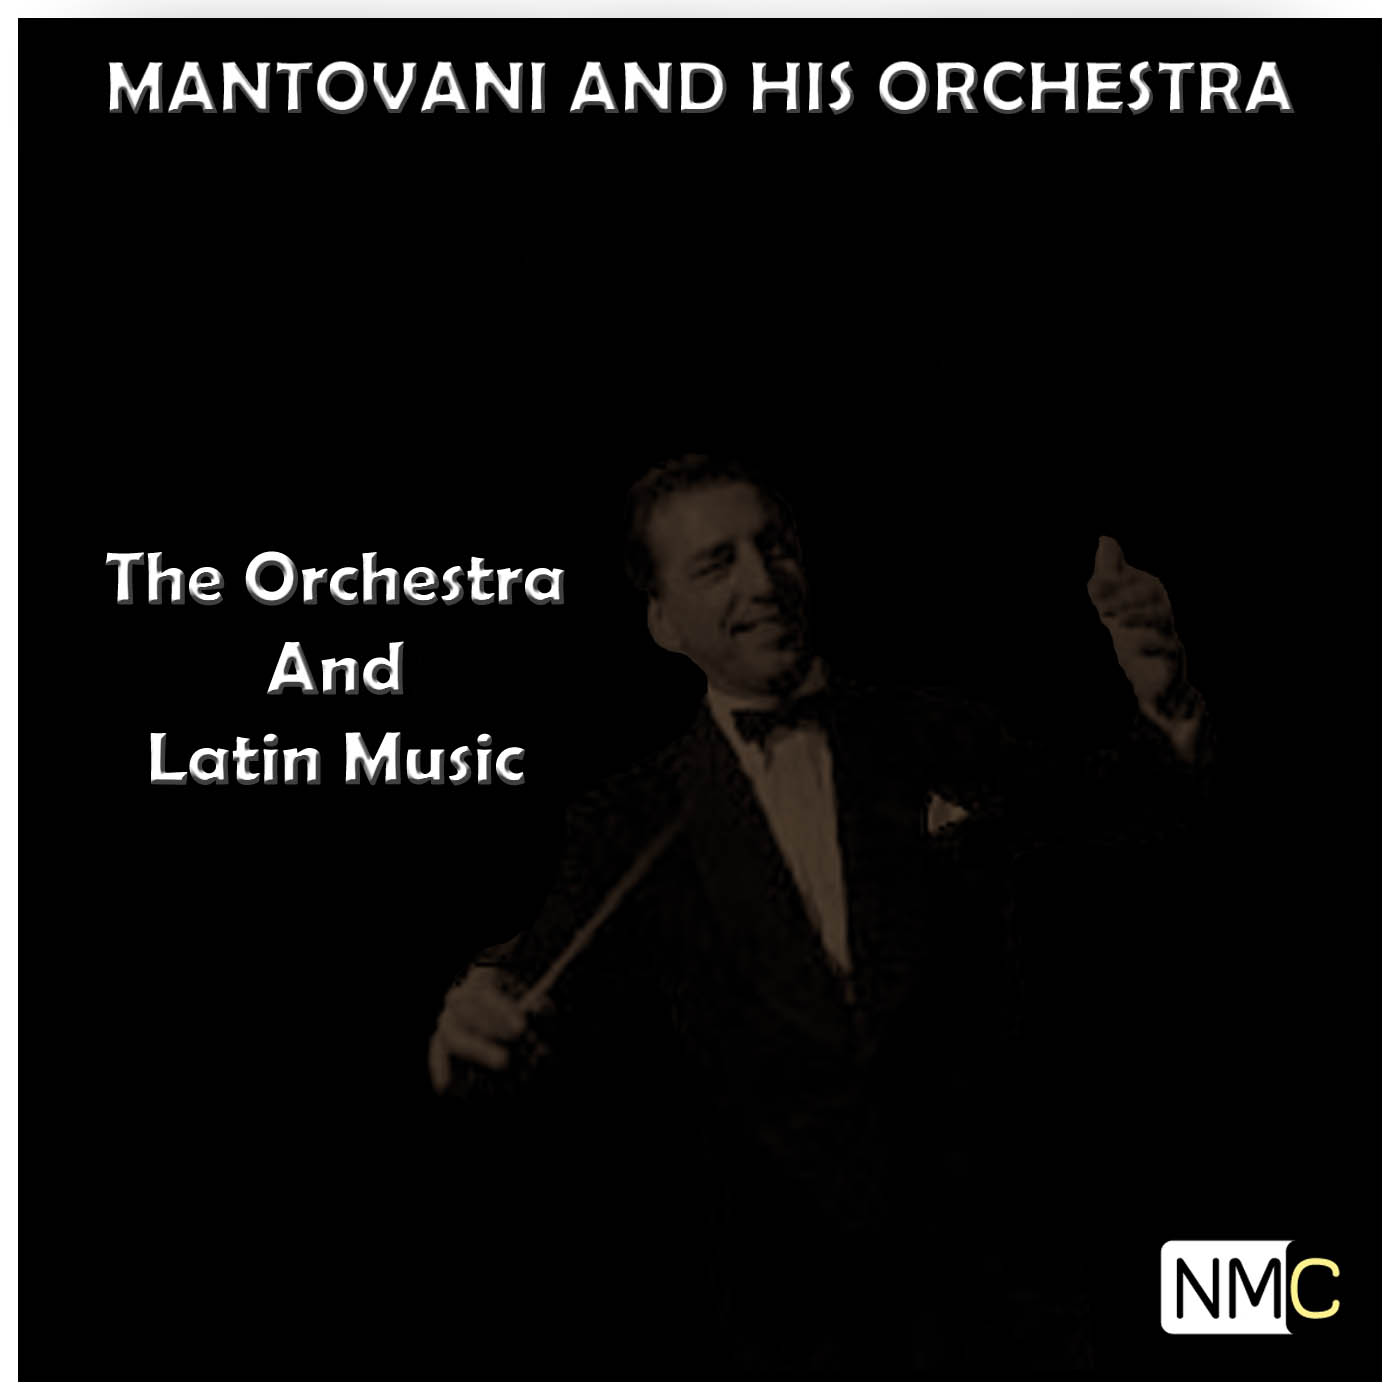 Mantovani and his Orchestra latin music classic nostalgia music catalogue old songs